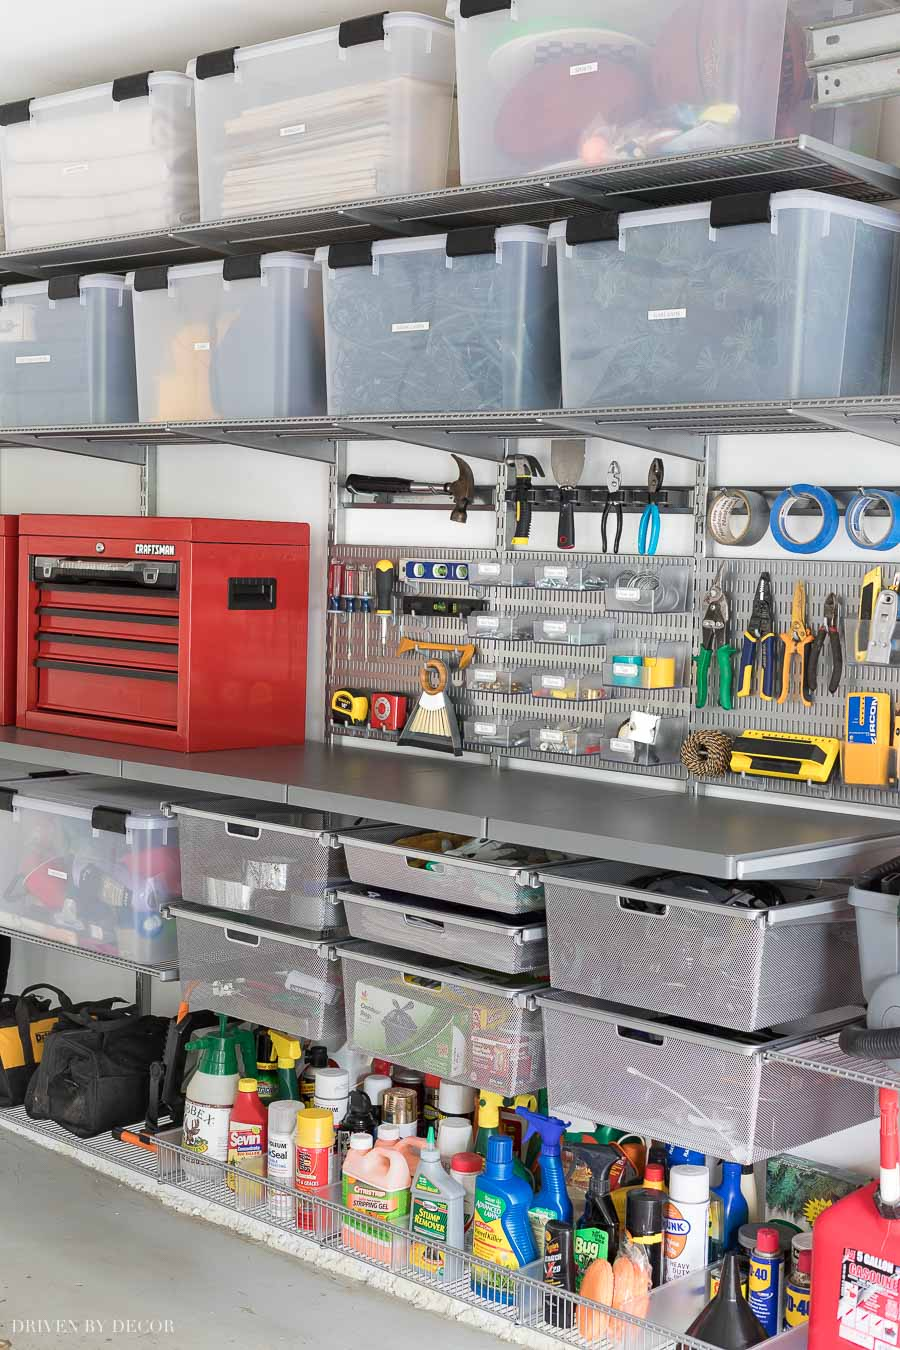 Love the smooth, heavy duty Elfa utility work surface integrated into this organized garage system!